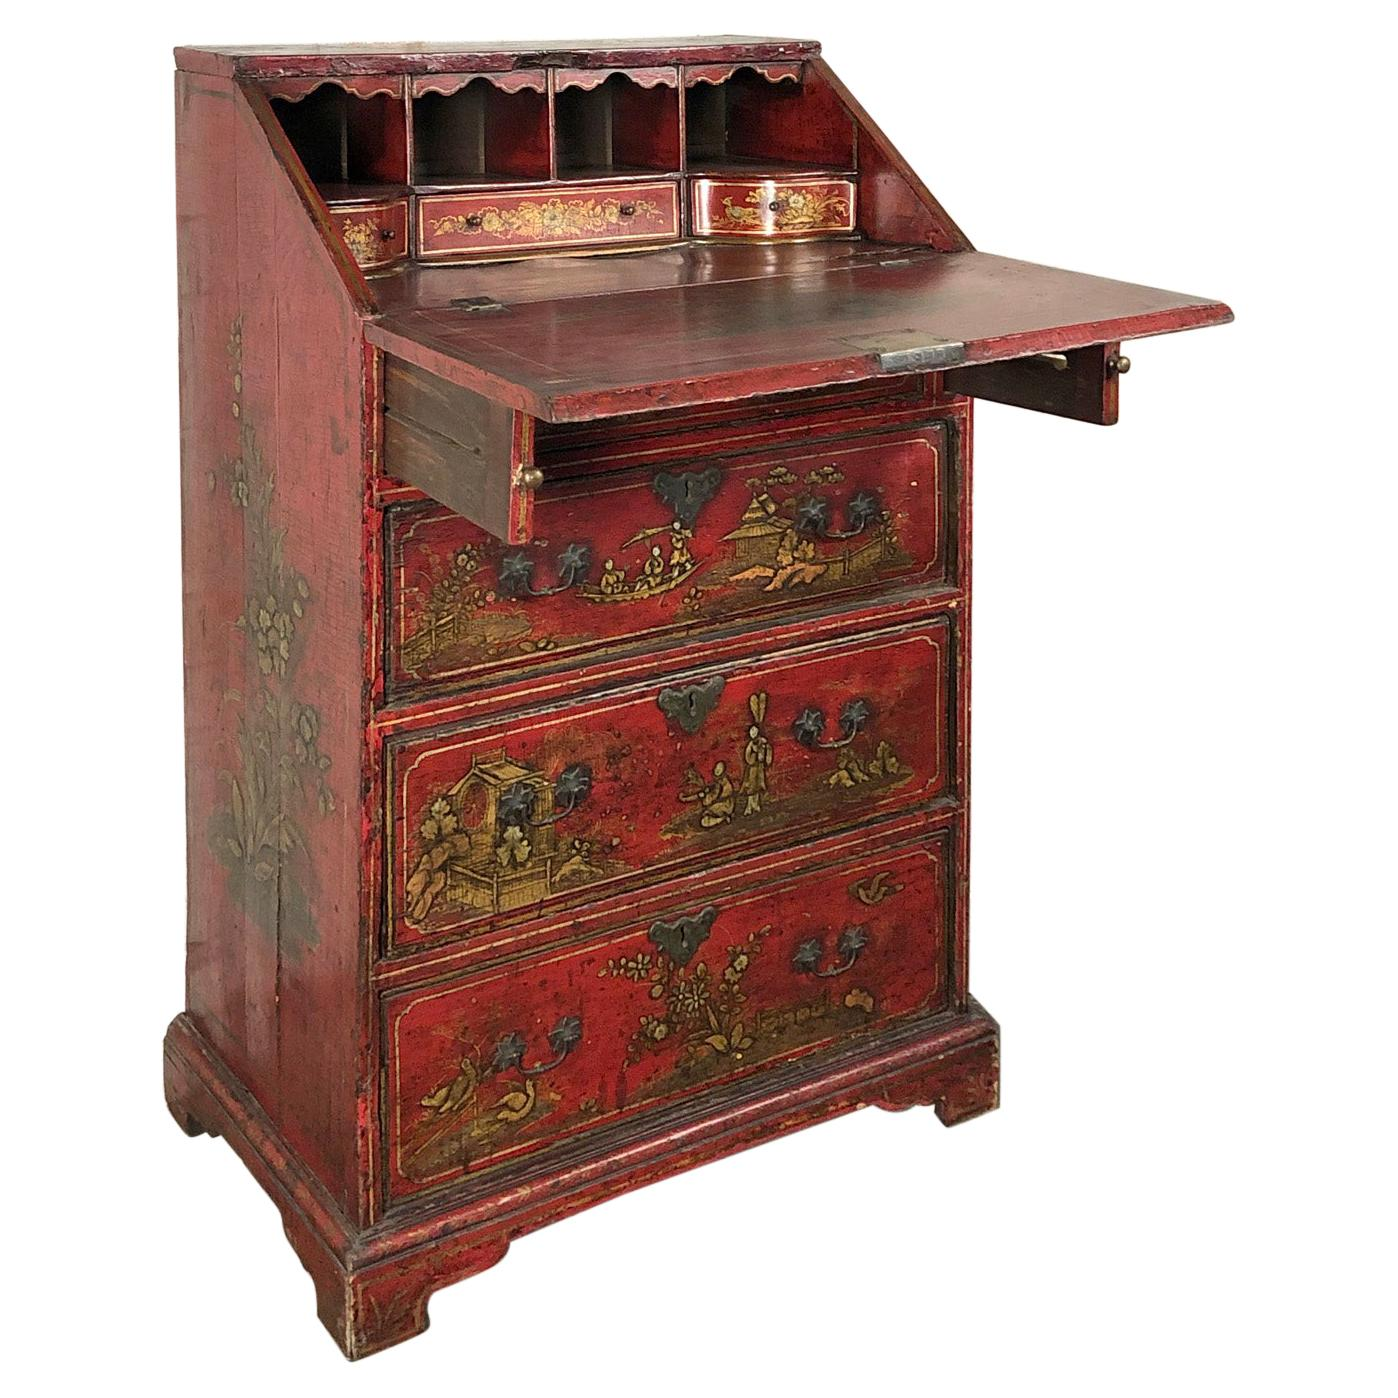 English Queen Anne, Early 18th Century Red Chinoiserie Lacquer Desk / Commode